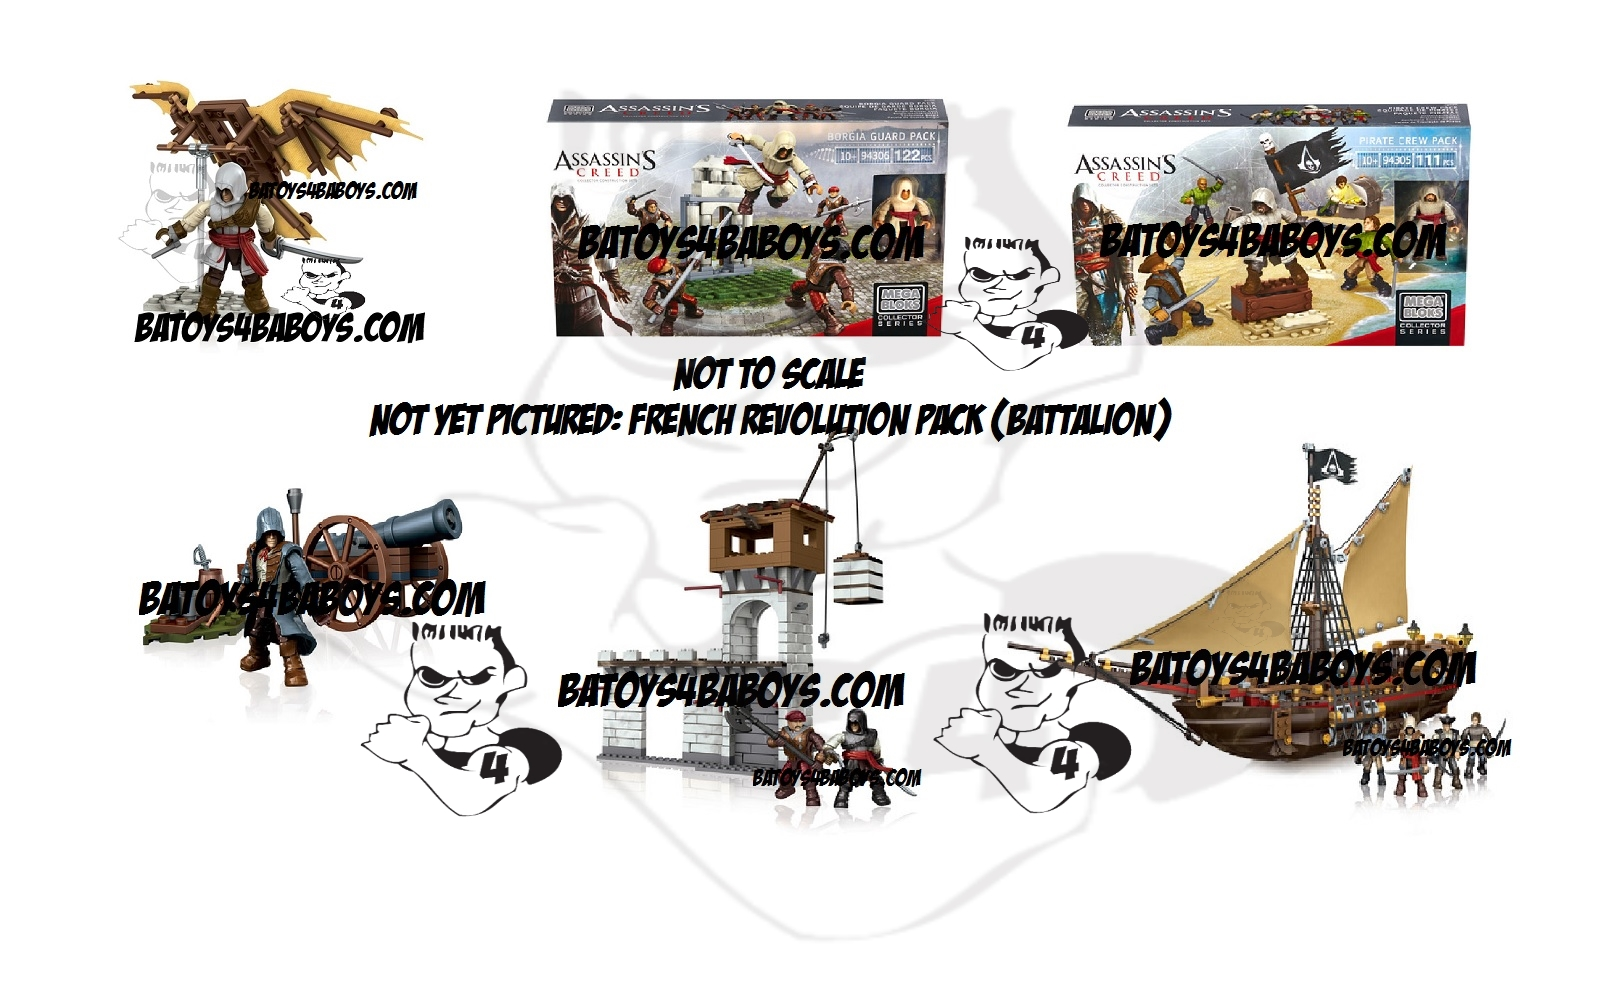 2014 Mega Bloks Assassin's Creed B.A. Toys 2014 Fall ACMB Blitz Bundle